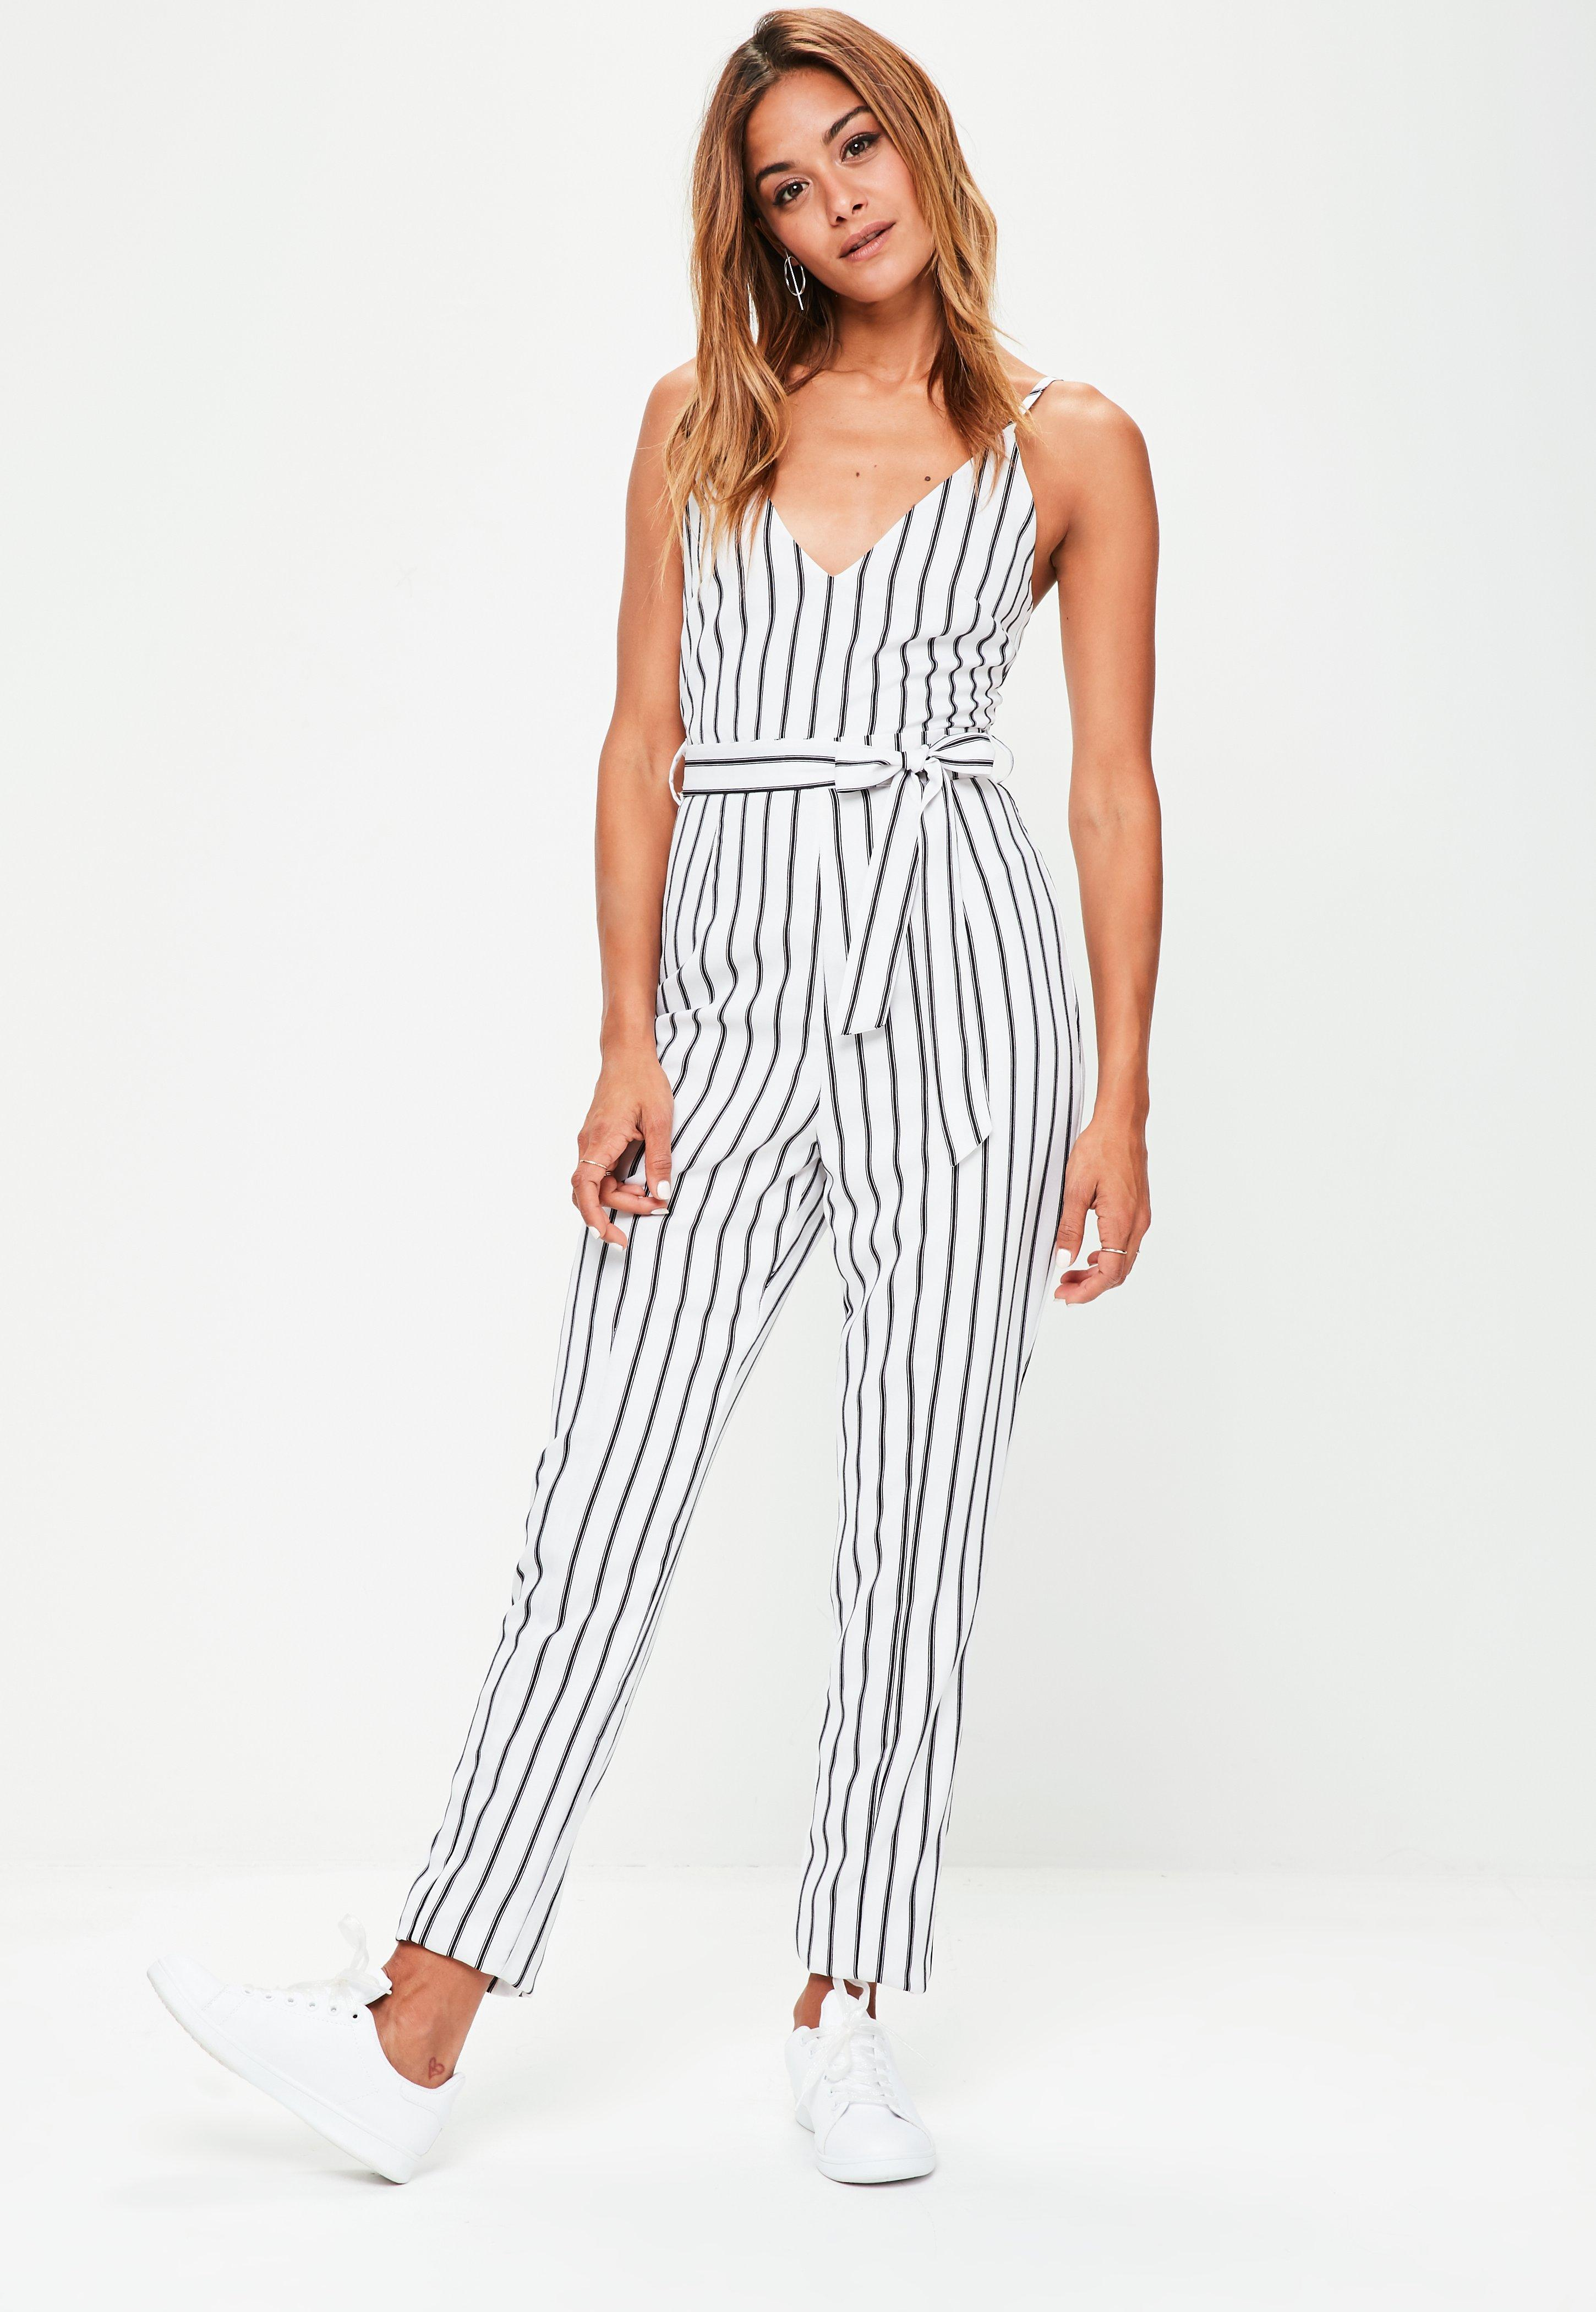 6379496e0e Lyst - Missguided Tall White Striped Cami Jumpsuit in White